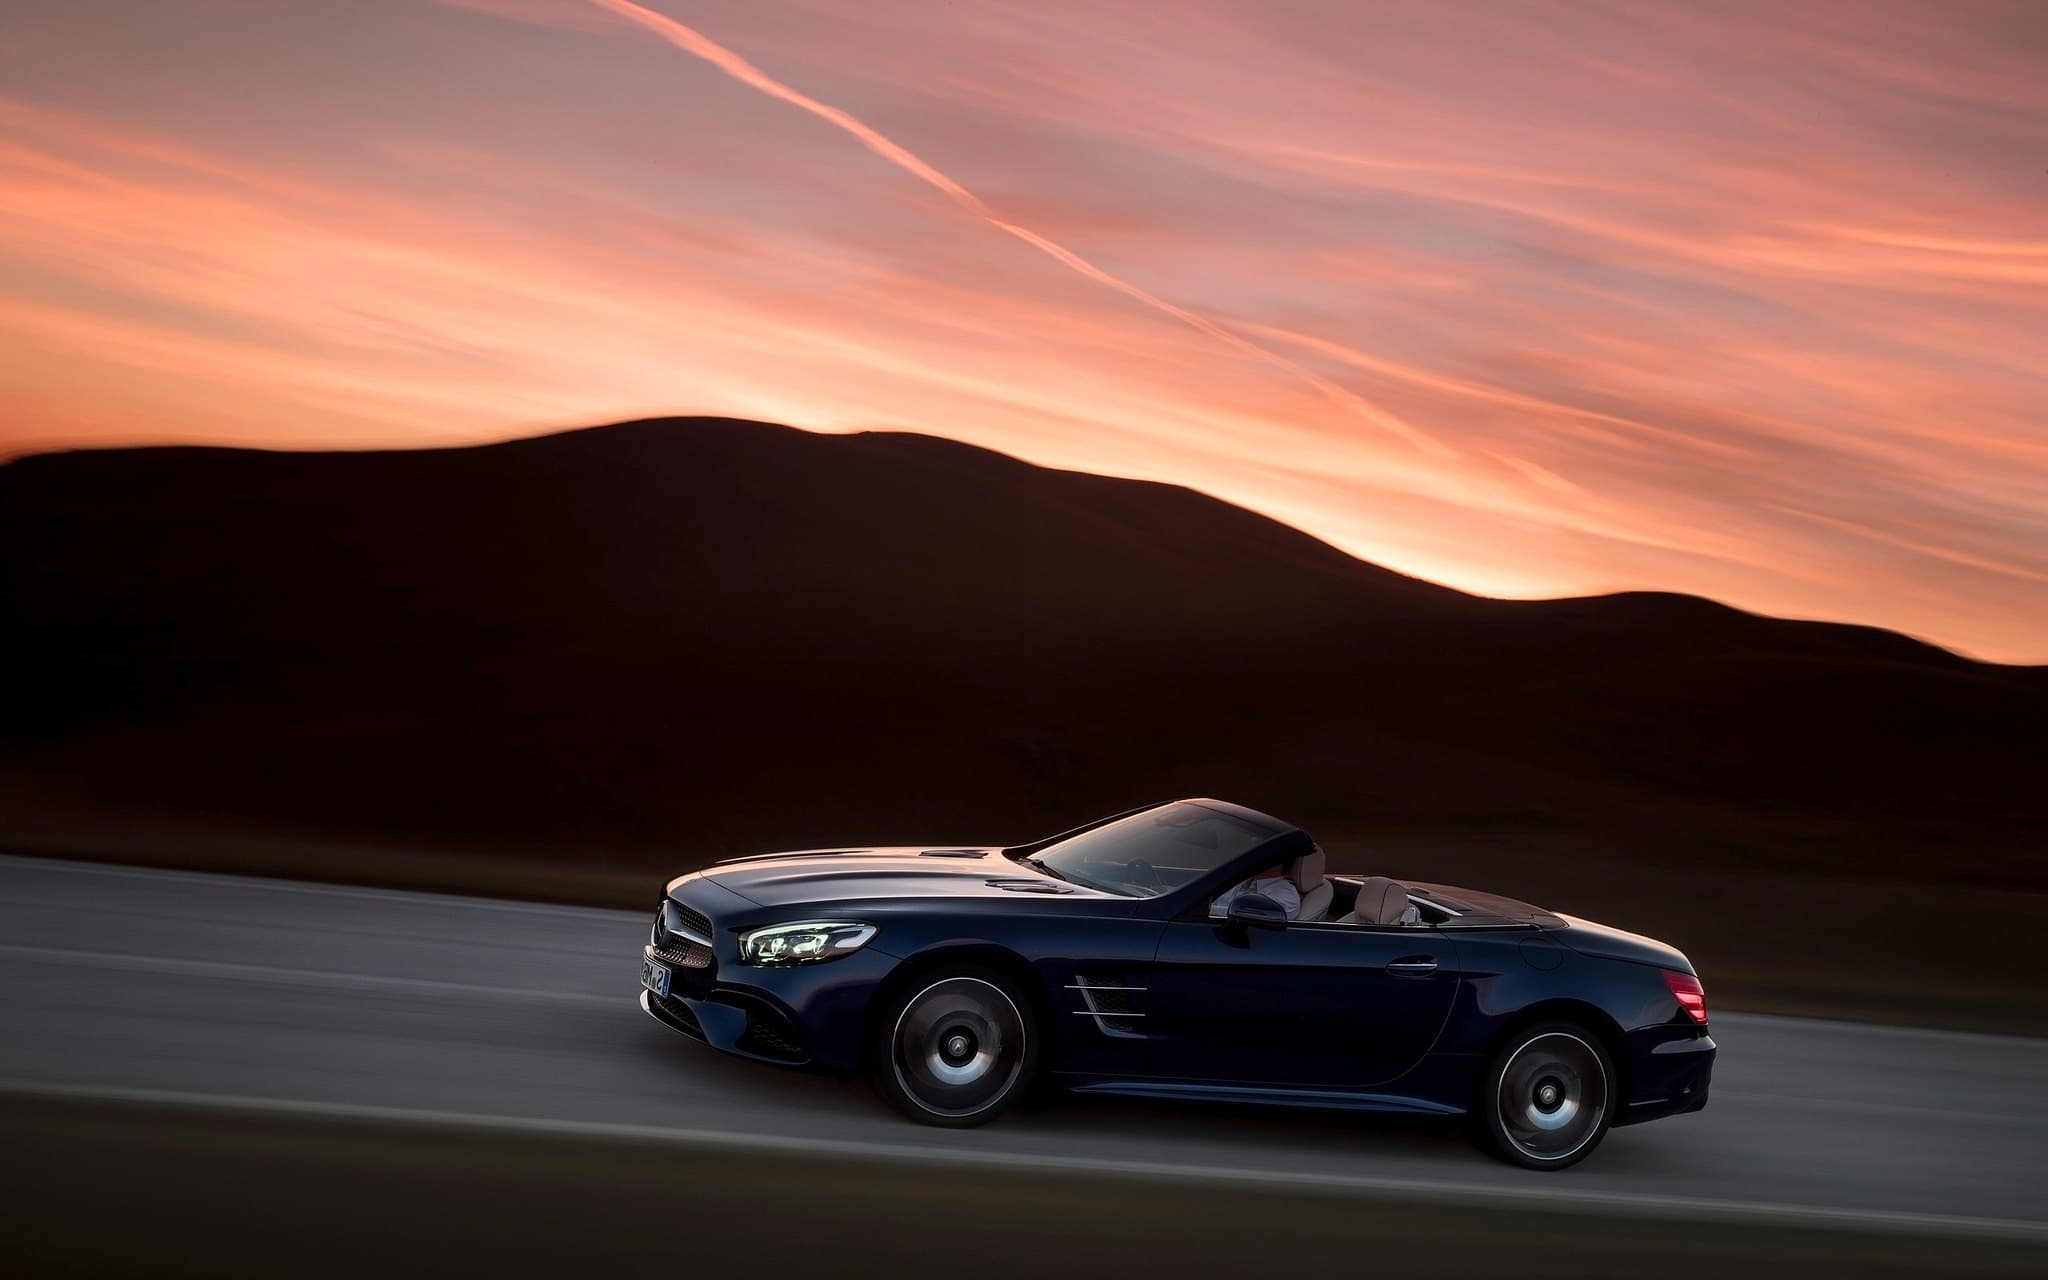 2016 Mercedes Benz SL500 motion image